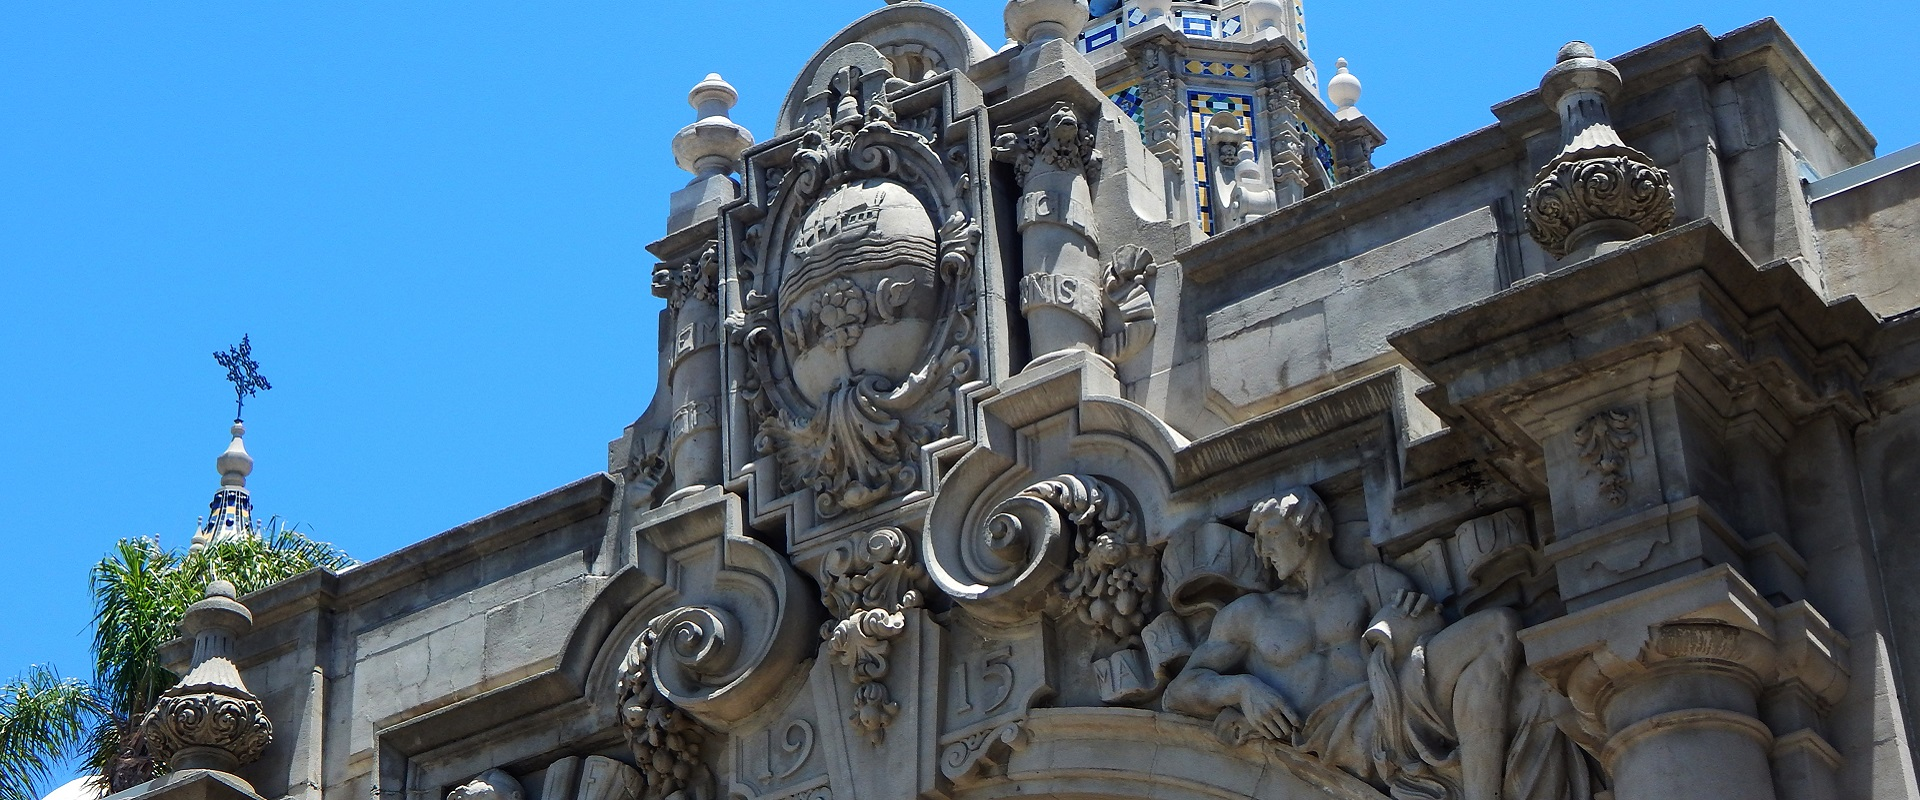 Intricate carvings on an arch at Balboa Park